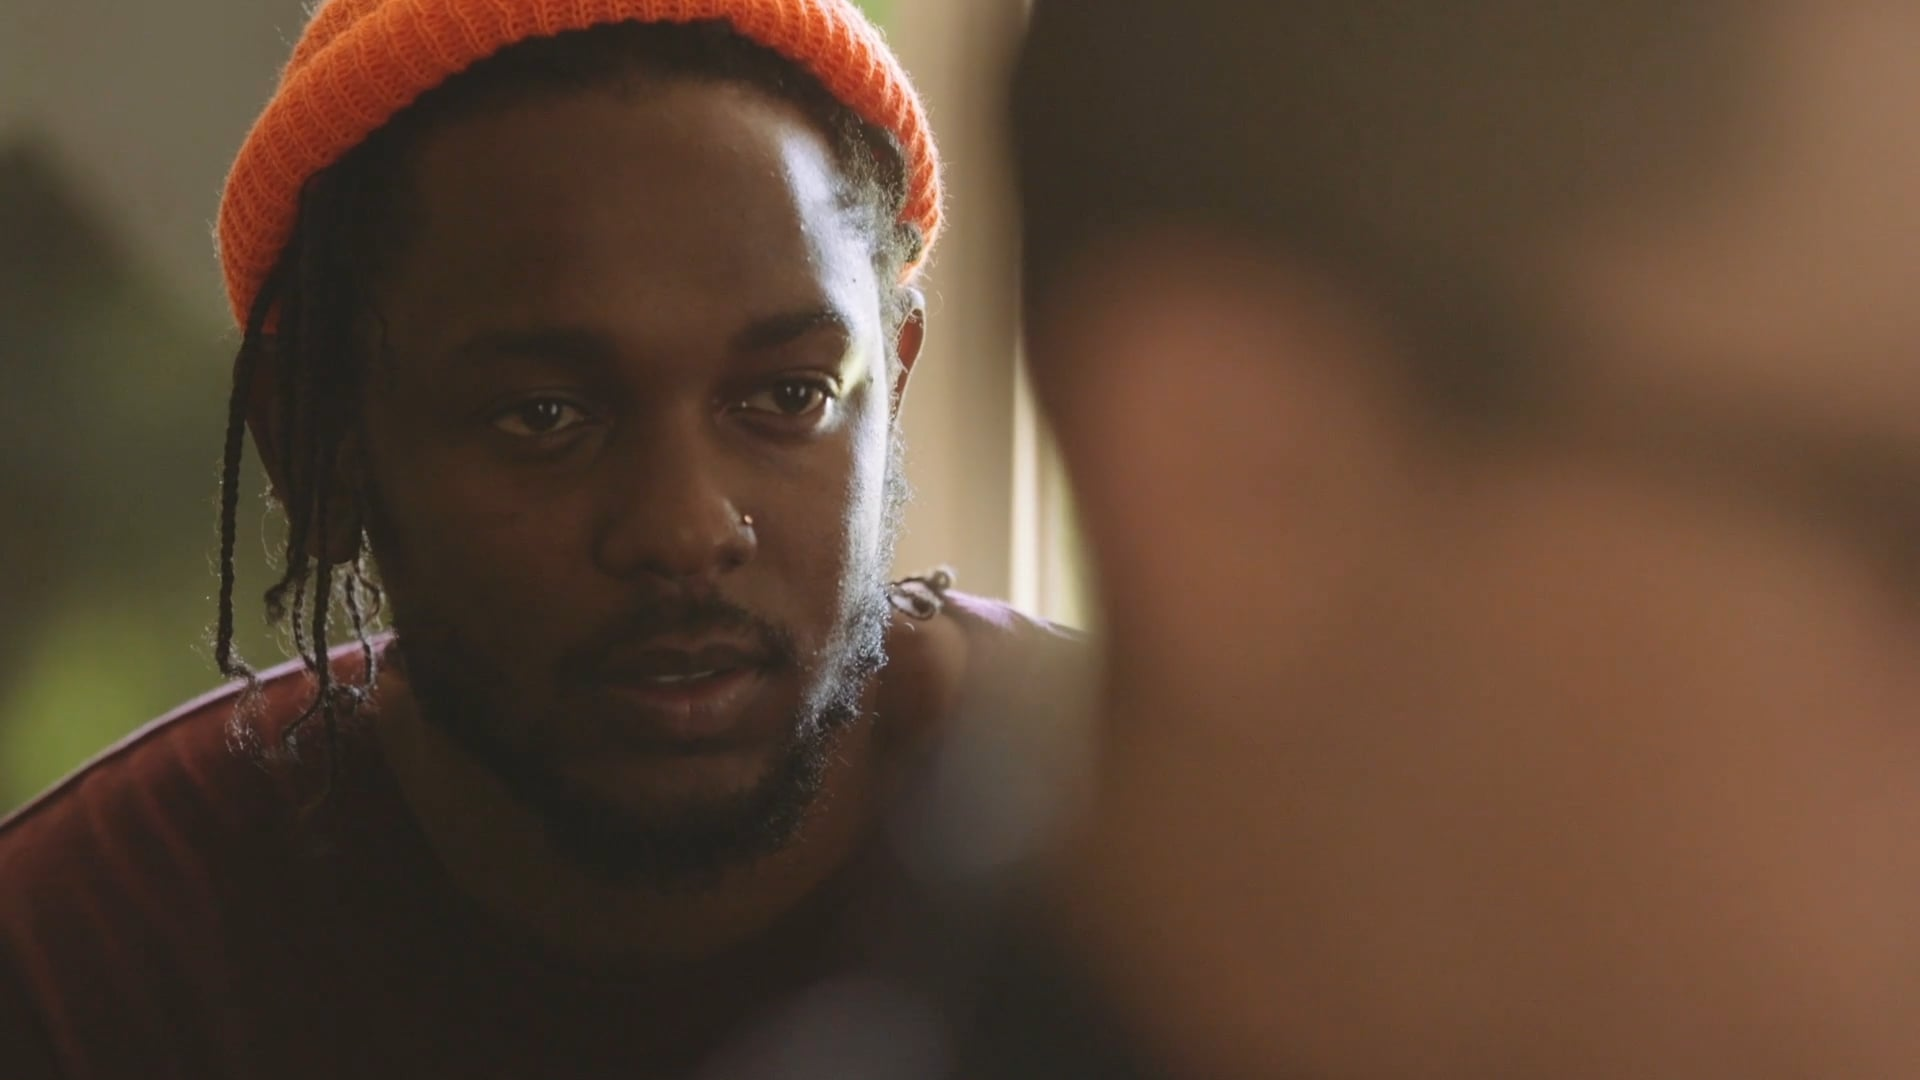 Kendrick Lamar Meets Rick Rubin and They Have an Epic Conversation | GQ - Trailer